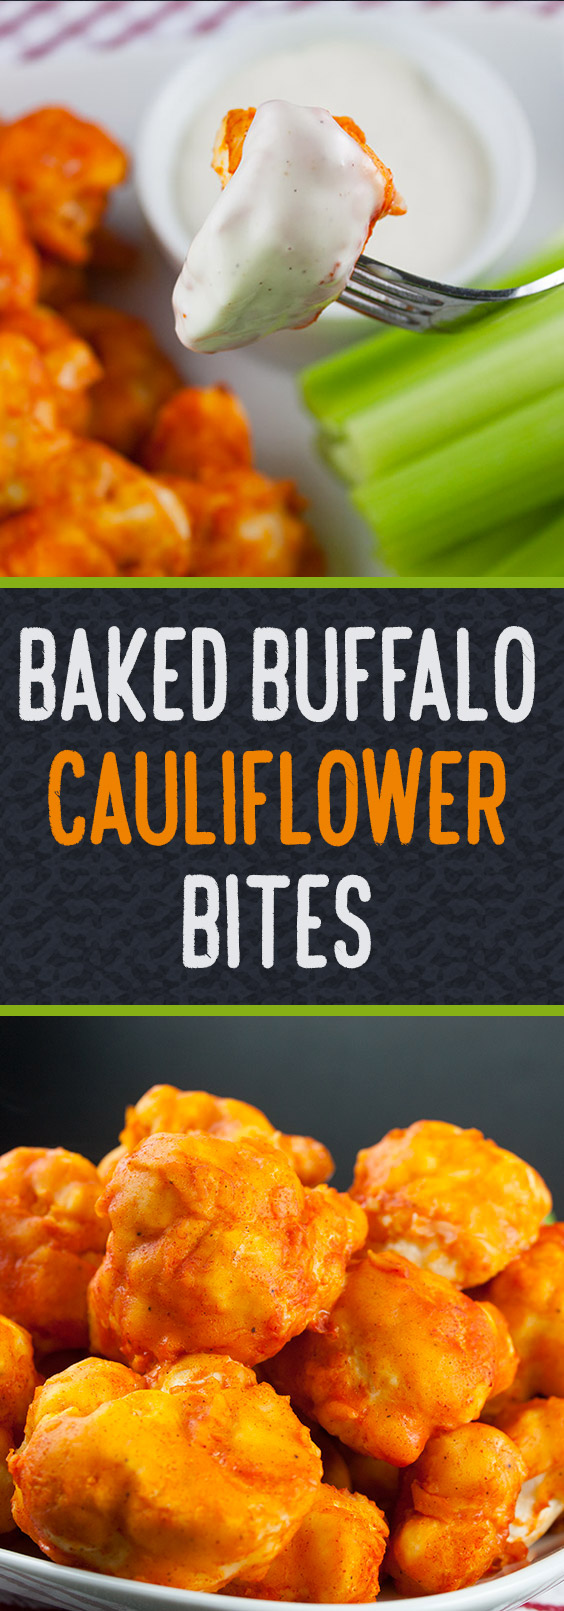 Baked Buffalo Cauliflower Bites - Crispy on the outside and just tender enough on the inside. The vegetarian buffalo wing!